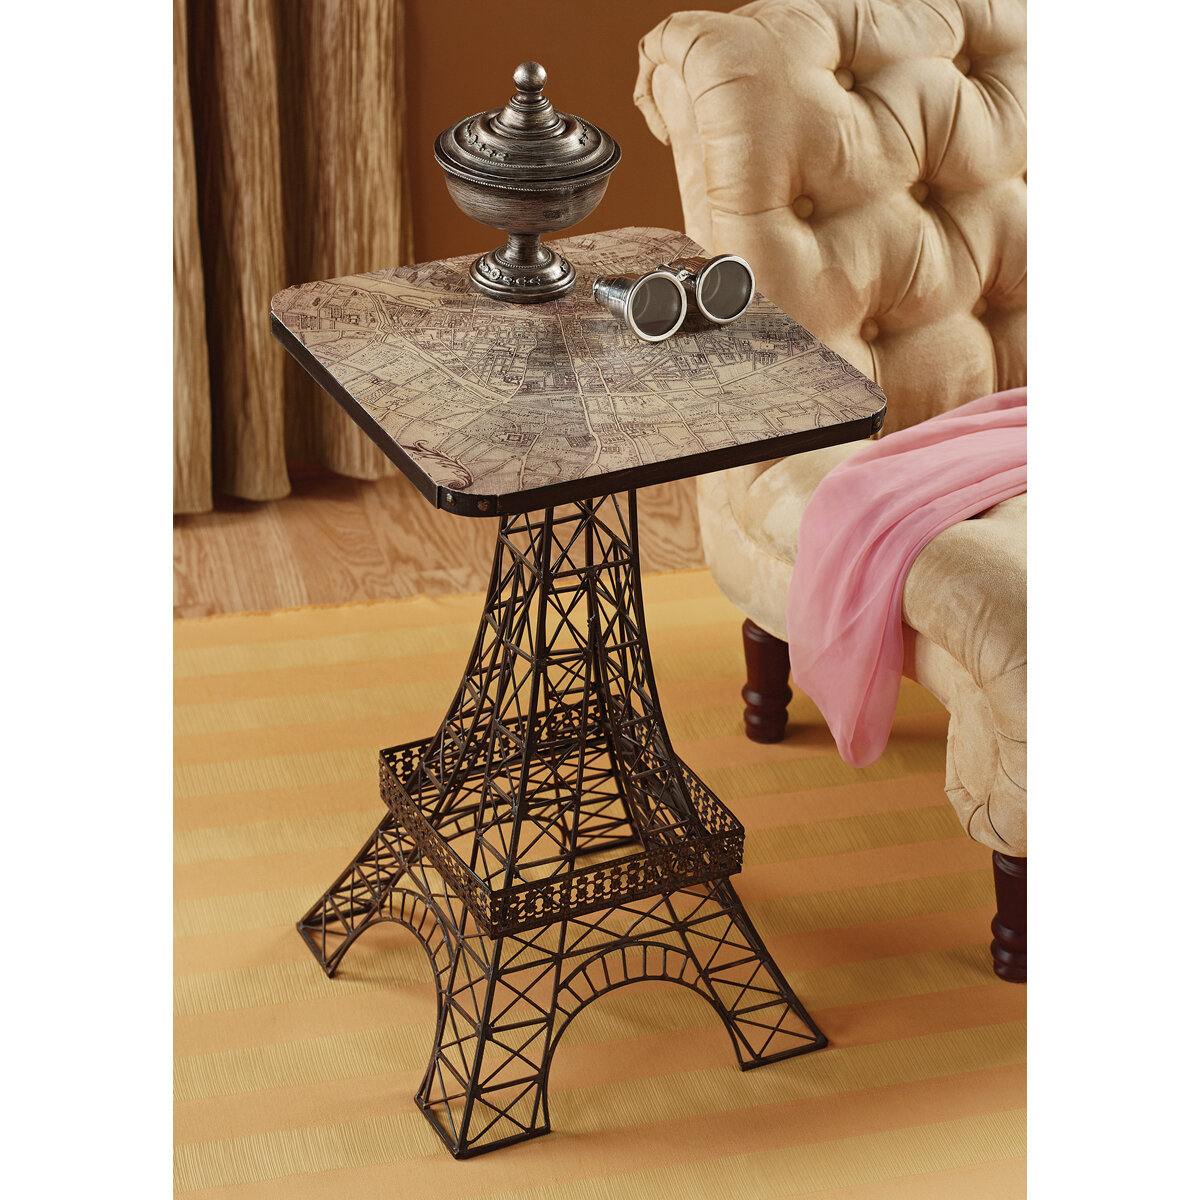 Ordinaire Design Toscano Tour Eiffel Sculptural Side Table U0026 Reviews | Wayfair